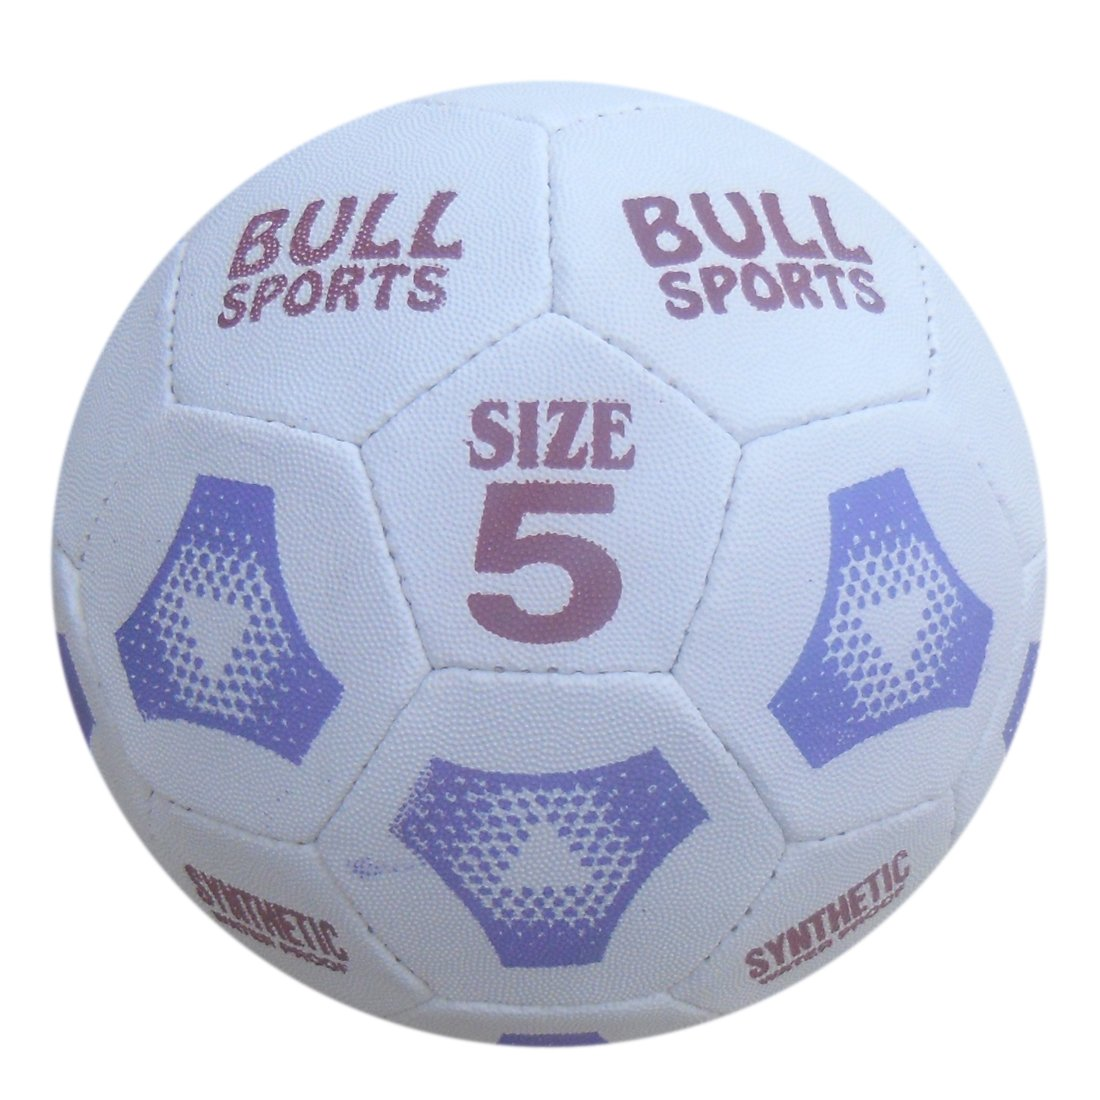 Bull Sports T5 Series Rubber Football 32 Panel (Size 5)